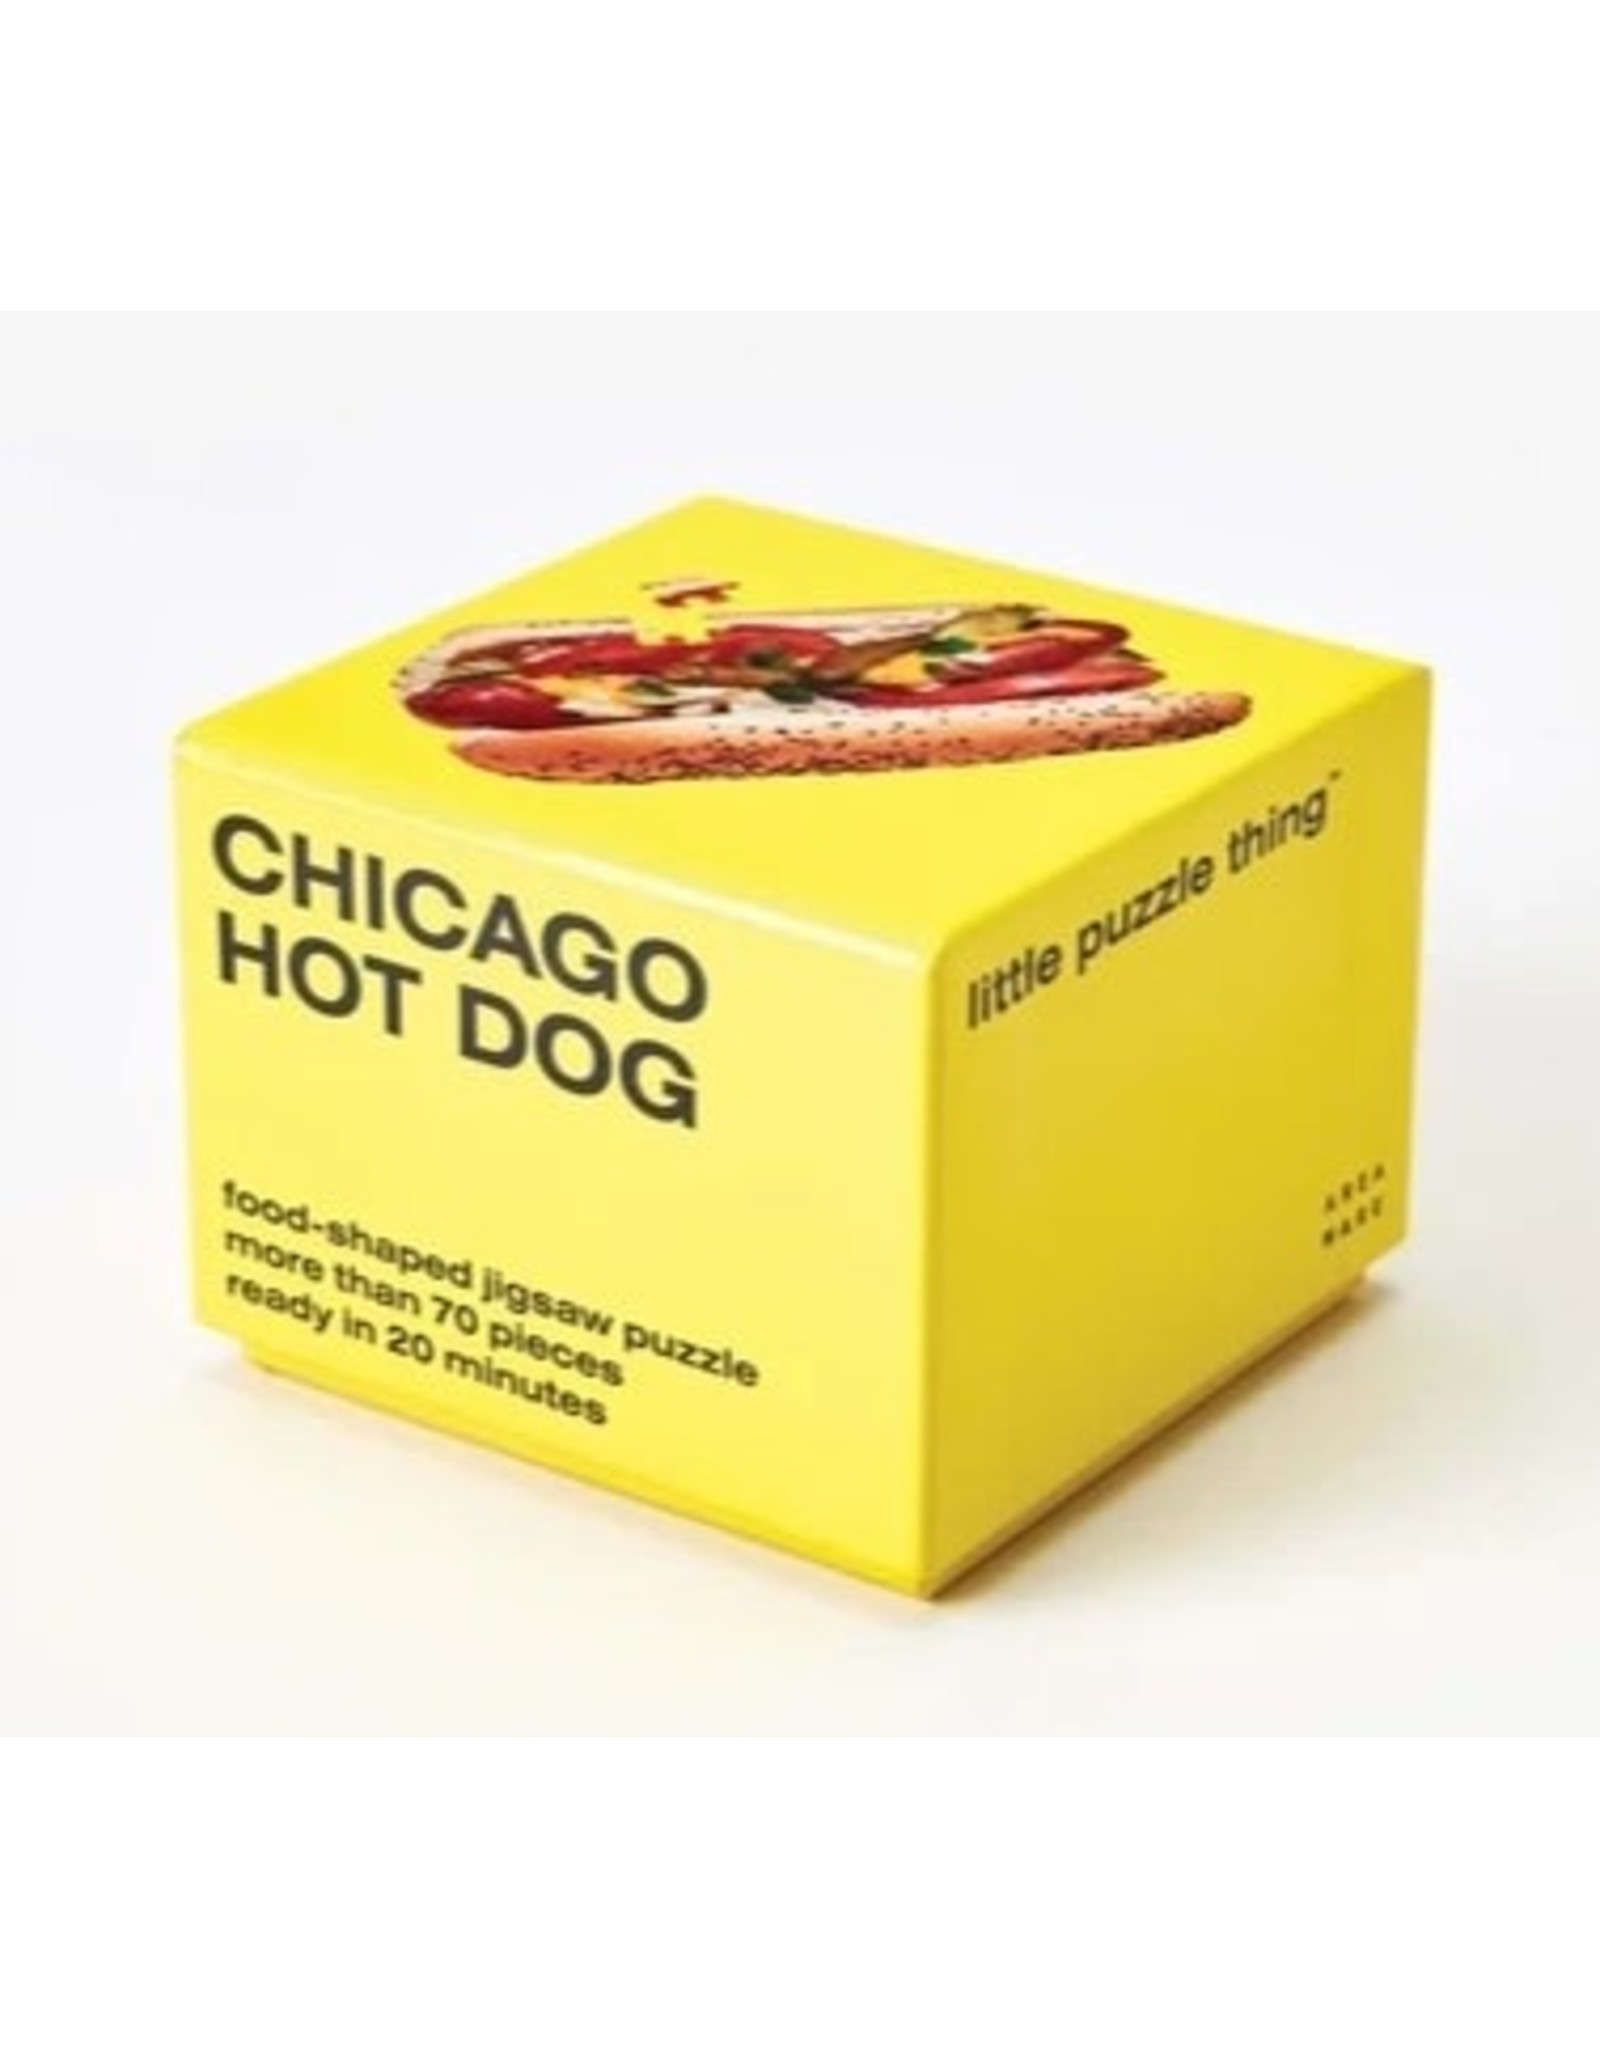 Little Puzzle Thing - Hot Dog